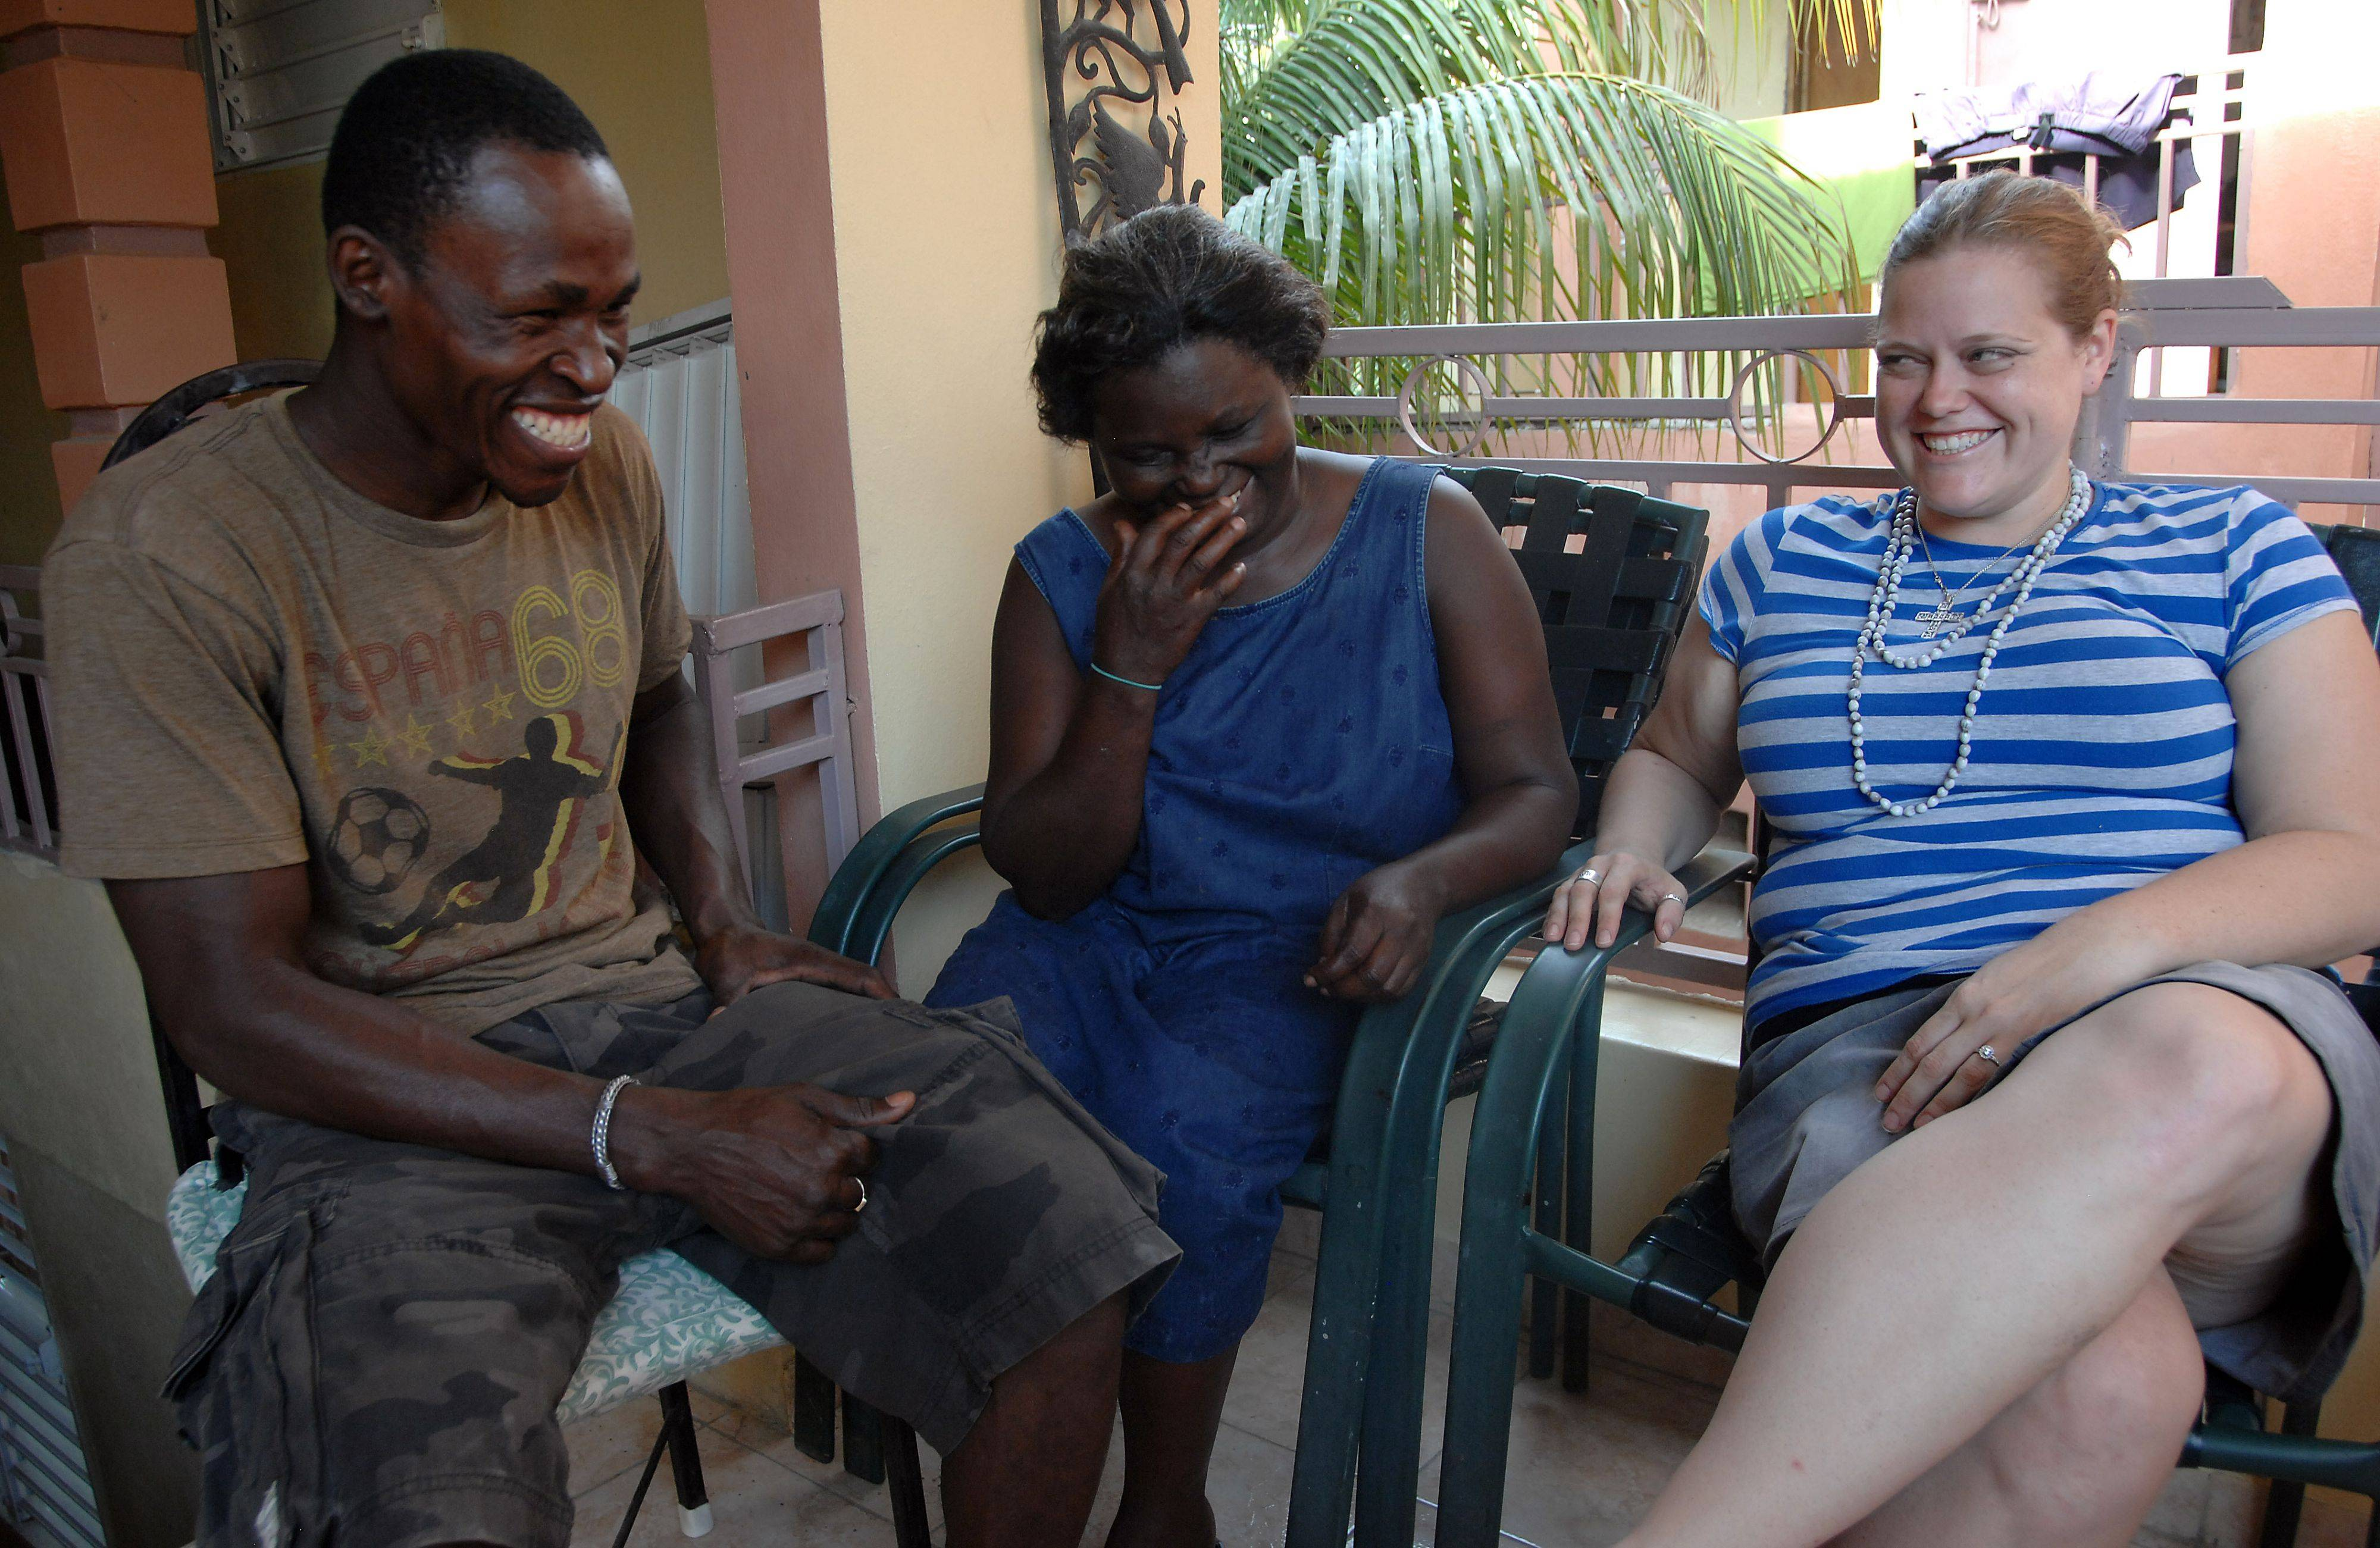 Lionel Legoute, formerly of Palatine, and his fiancee Rachel Ehrhard of Oak Park shares a moment with Port-au-Prince resident Madam Venia Jean Baptiste in Port-au-Prince, Haiti talking about the earthquake and how it changed their lives.